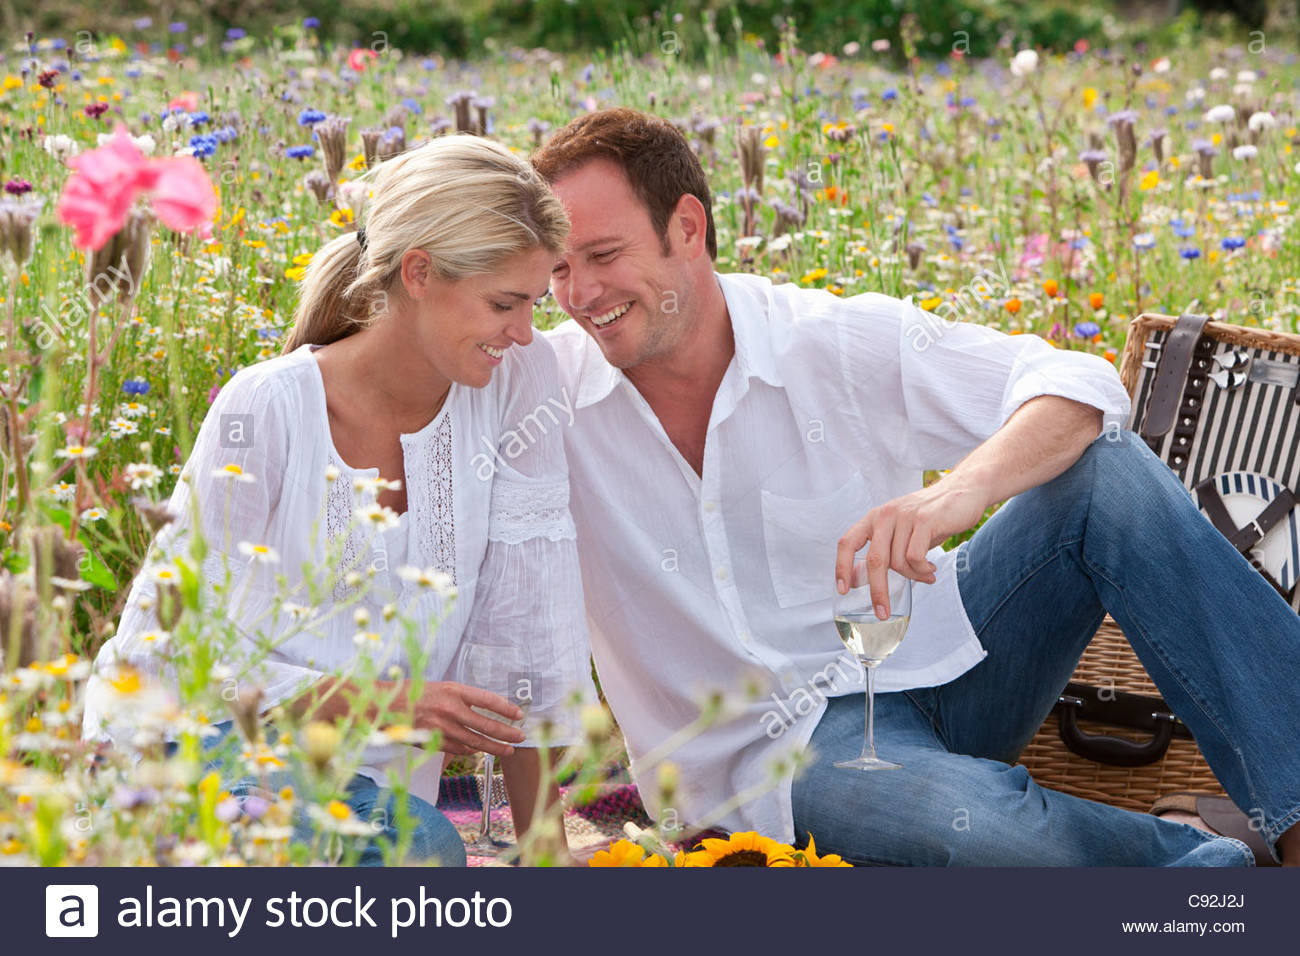 Smiling couple drinking white wine and picnicking in sunny wildflower field - Stock Image